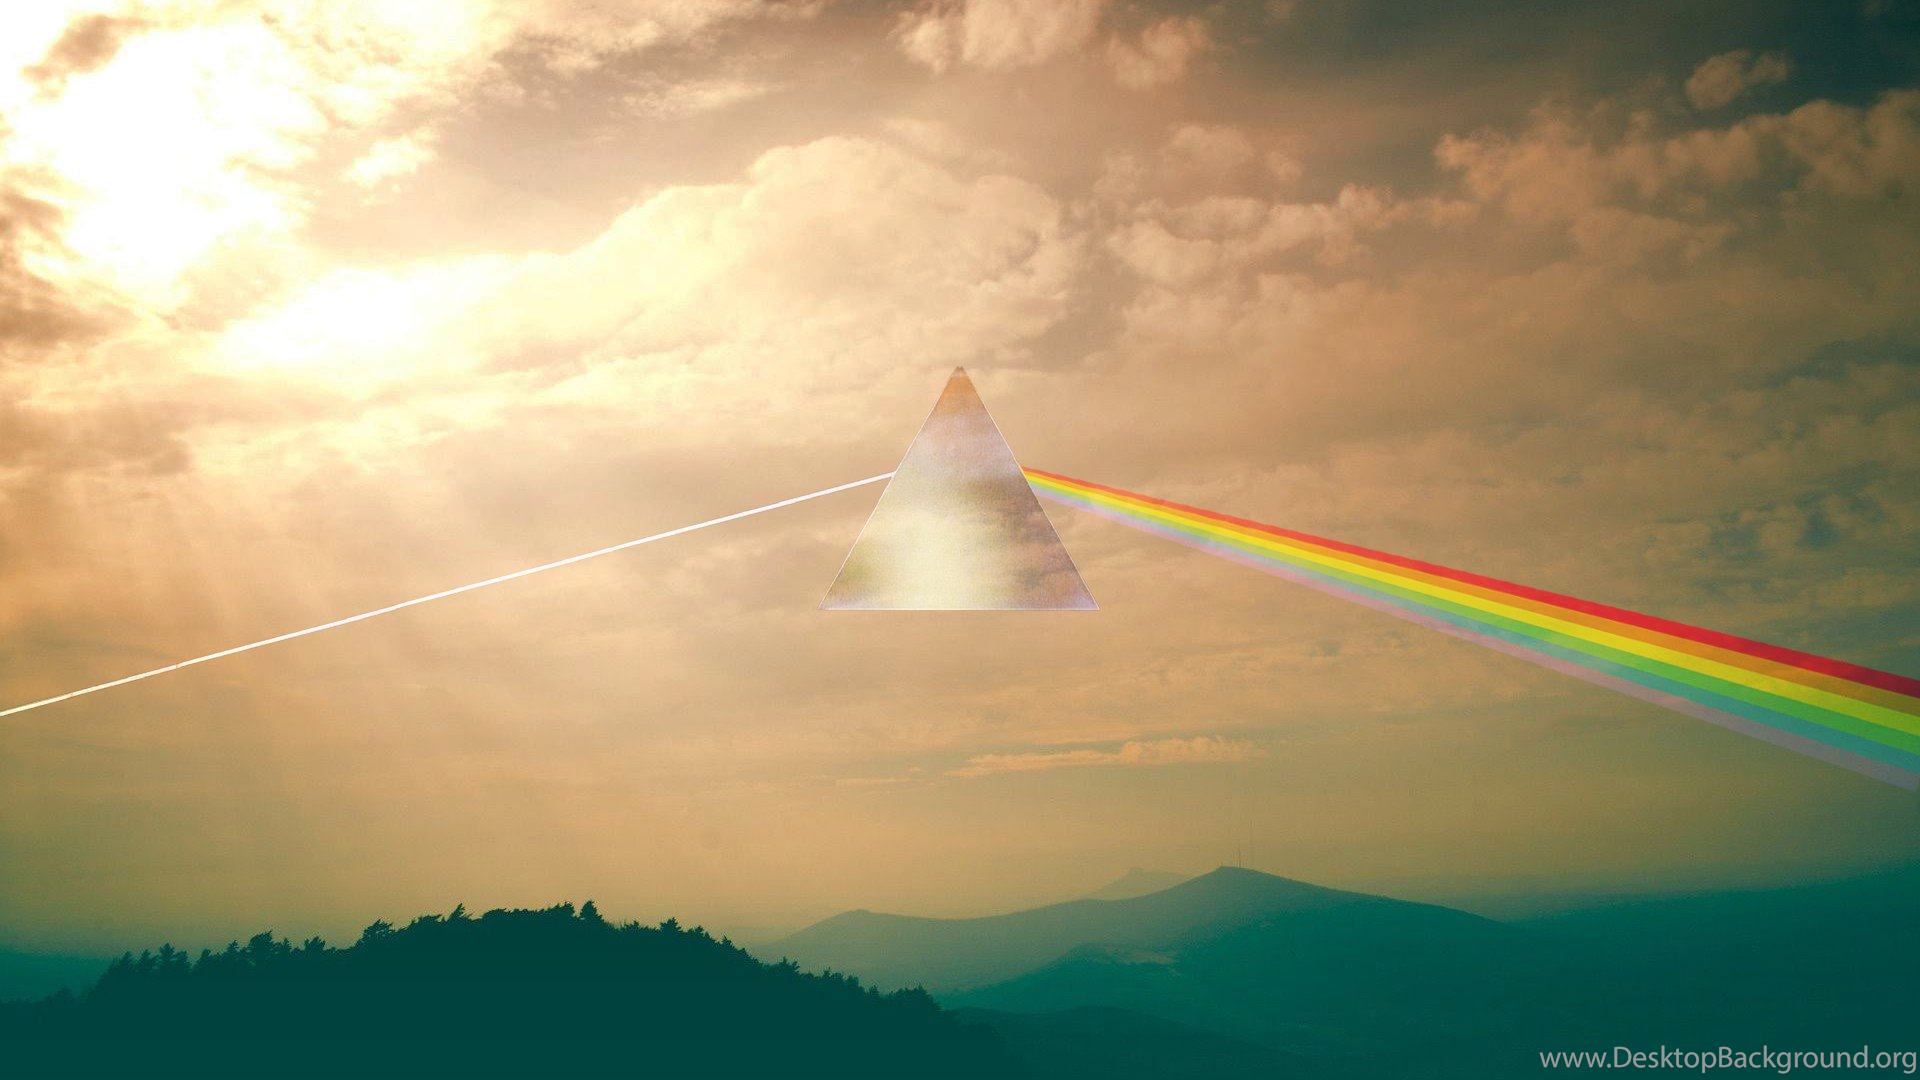 Dark Side Of The Moon Inspired Wallpapers Oc 1920x1080